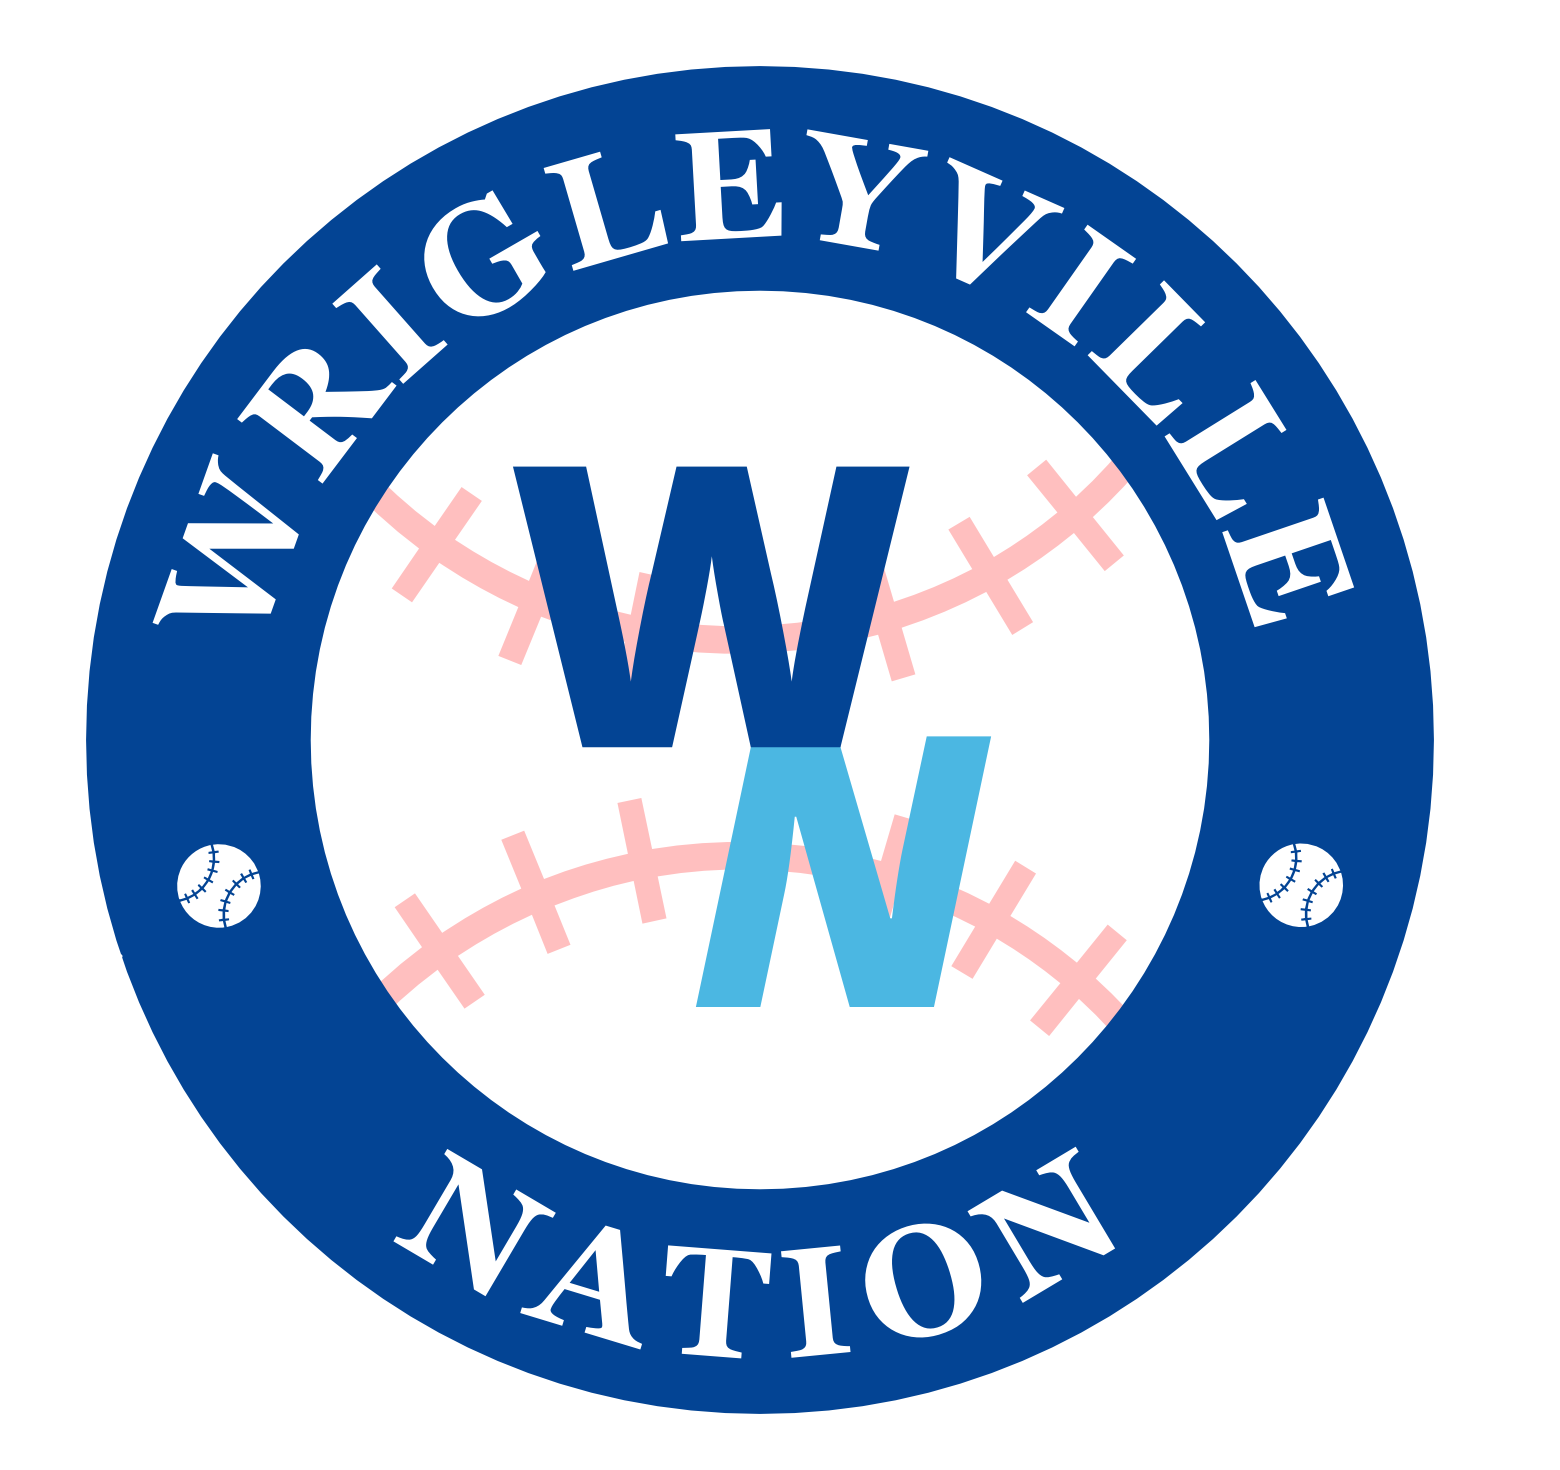 Wrigleyville Nation Ep 212 - Guest: Alex Crisafulli, Cubs Offense, Nico Debut, Cubs Cardinals Preview show art